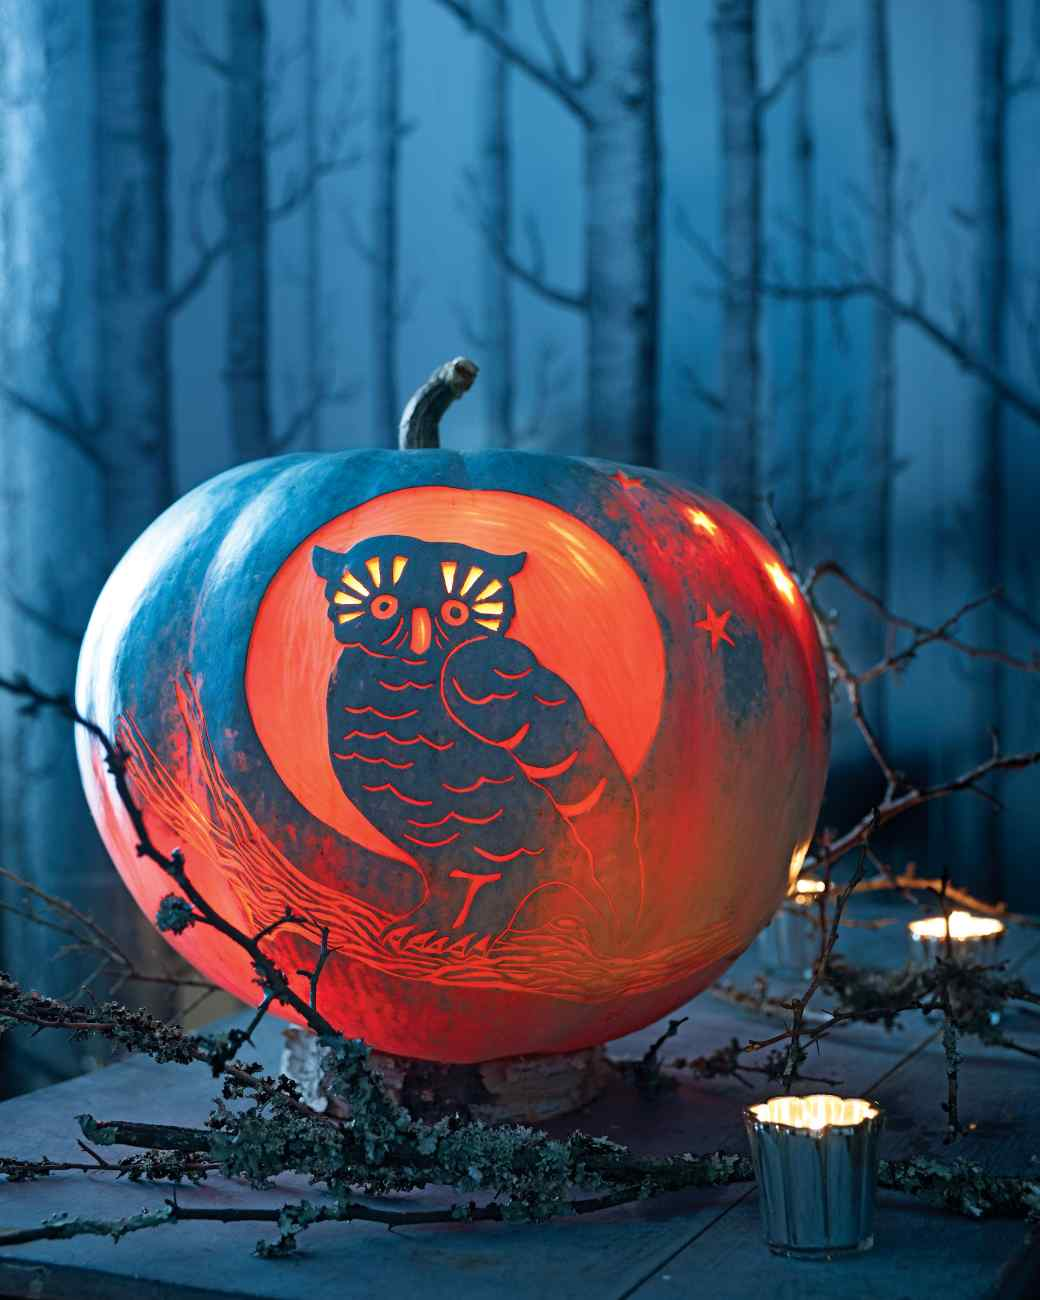 25 Awesome Pumpkin Halloween Decorations Ideas